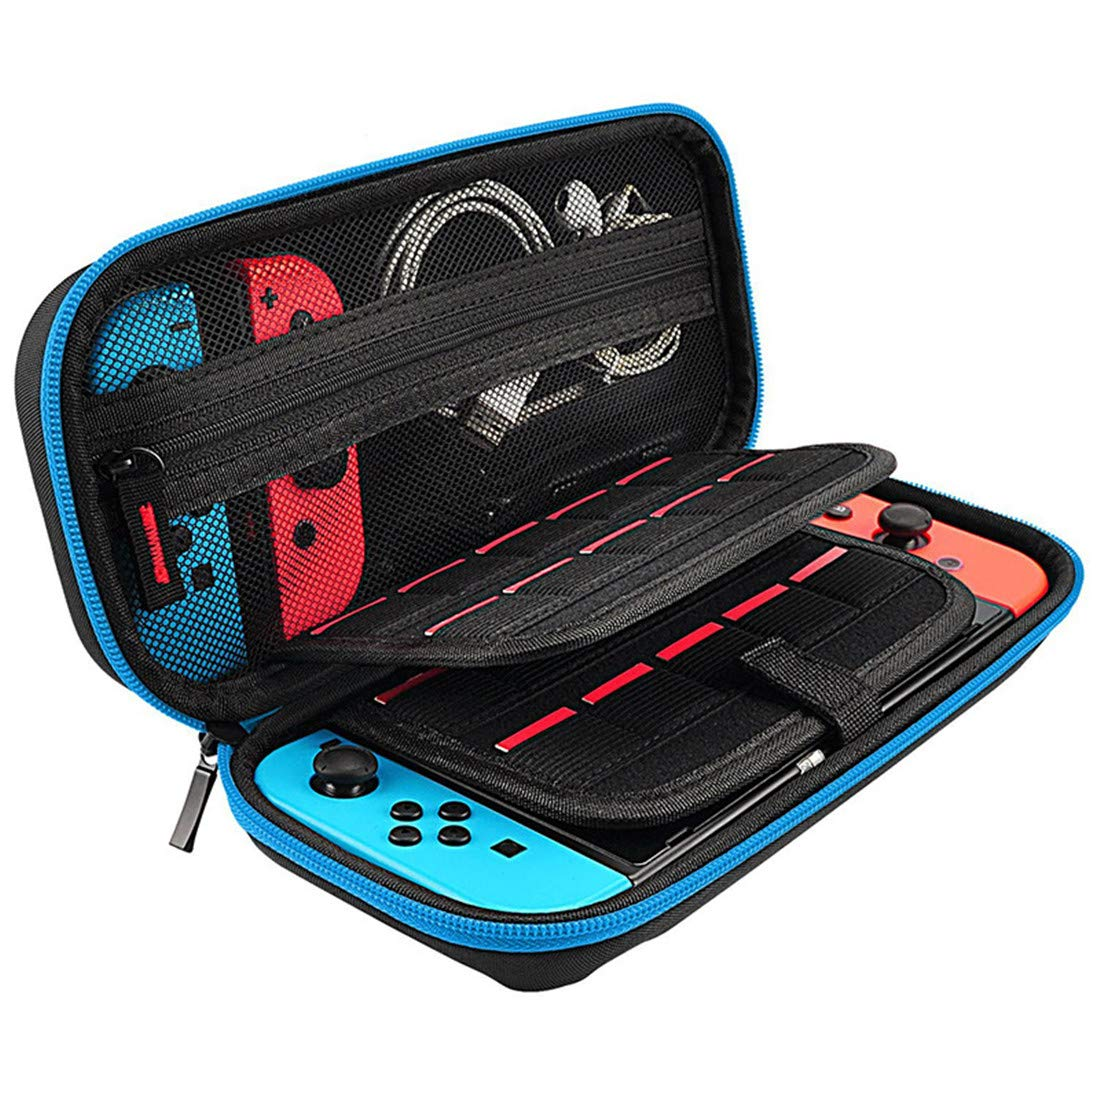 Qiling Nintendo Switch Carrying Case - 20 Game Cartridges Protective Hard Shell Travel Carrying Case Pouch for Nintendo Switch Console & Accessories (Black)